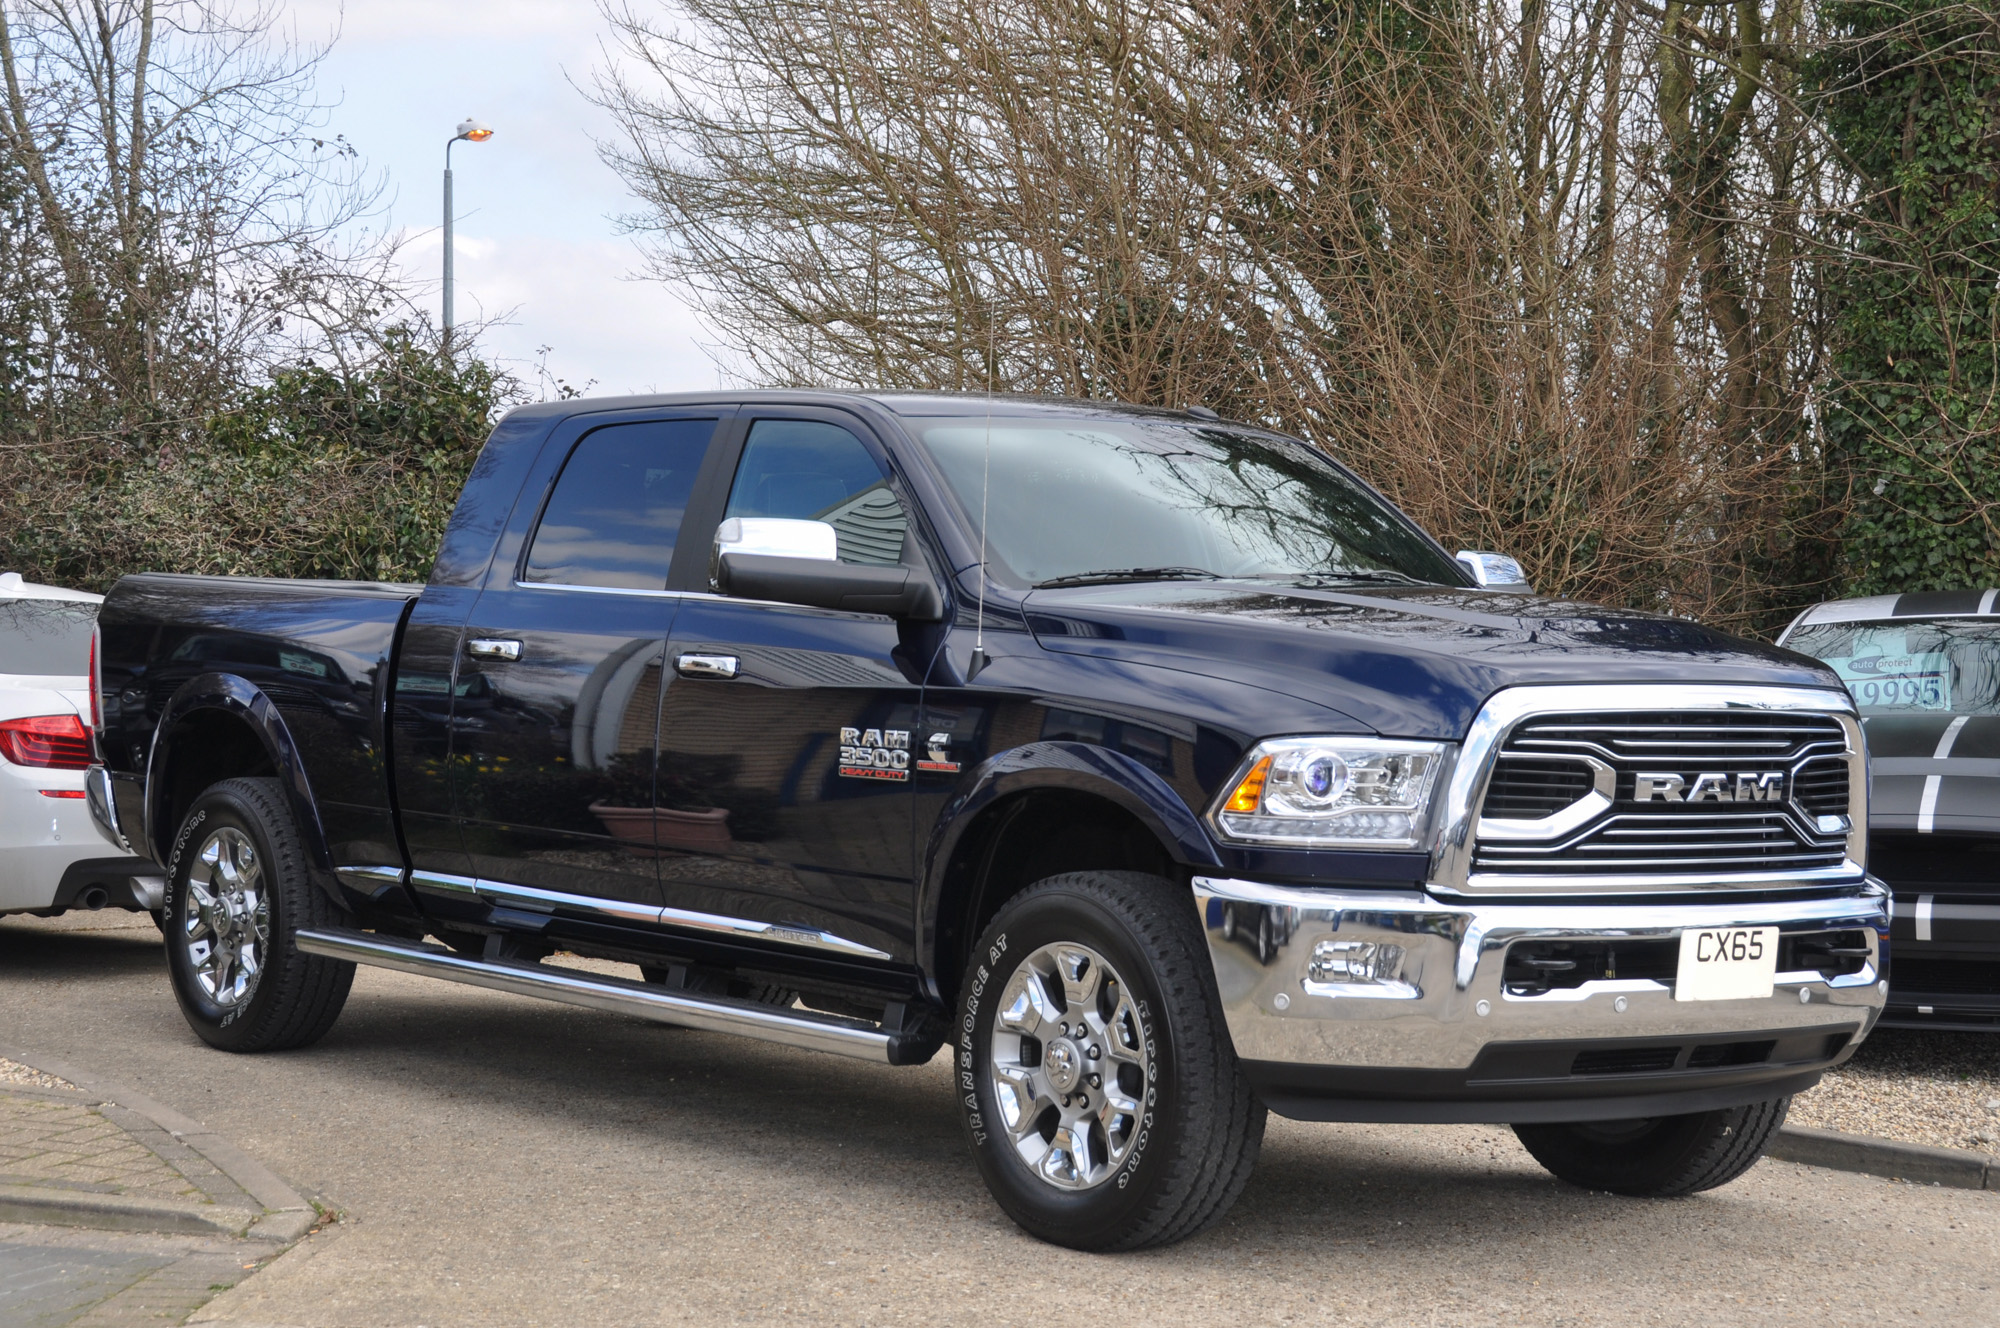 ram 2500 diesel new up ing cars 2019 2020 1st Gen Cummins Rollin Coal ram 2500 diesel 2016 ram 3500 diesel megacab limited david boatwright partnership